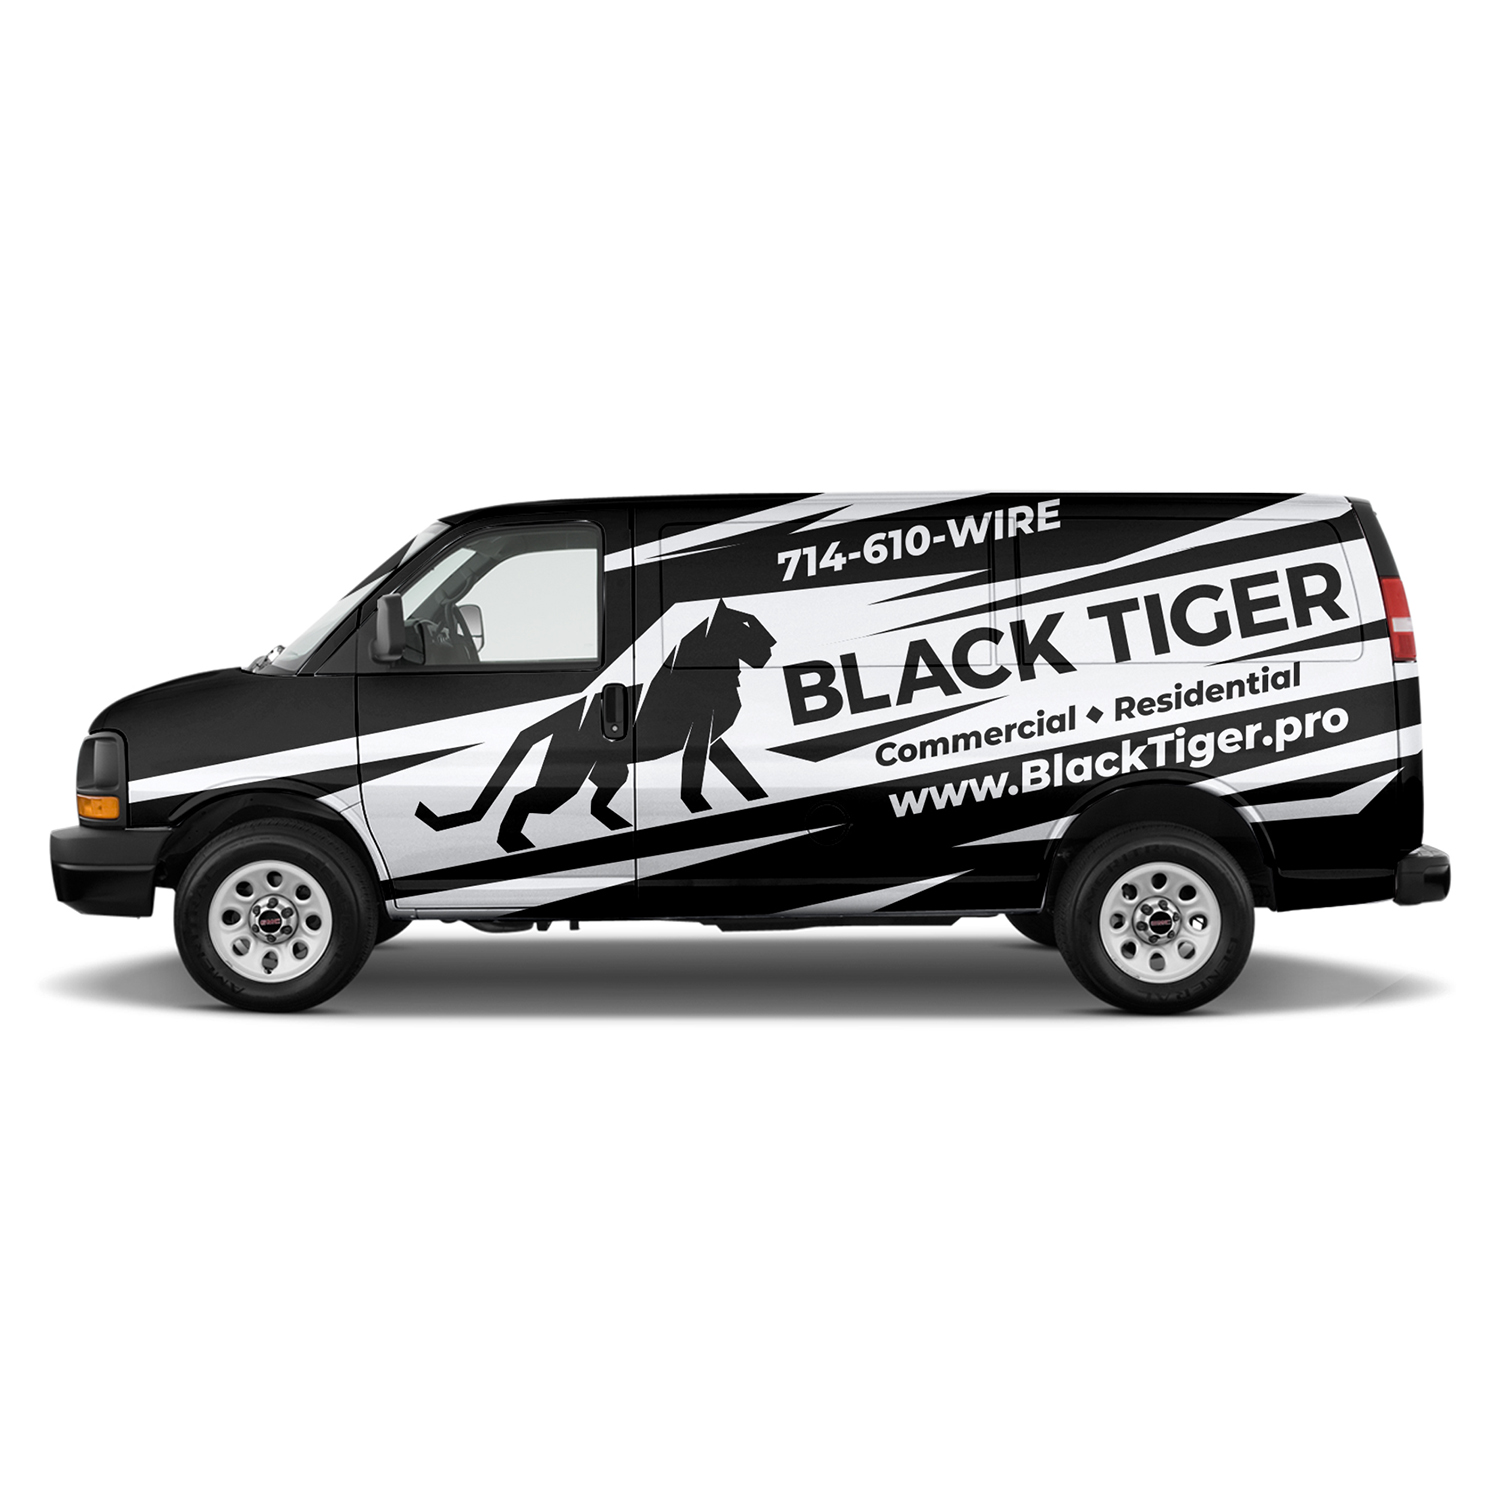 Bold Serious Contractor Car Wrap Design For Black Tiger By Czeh